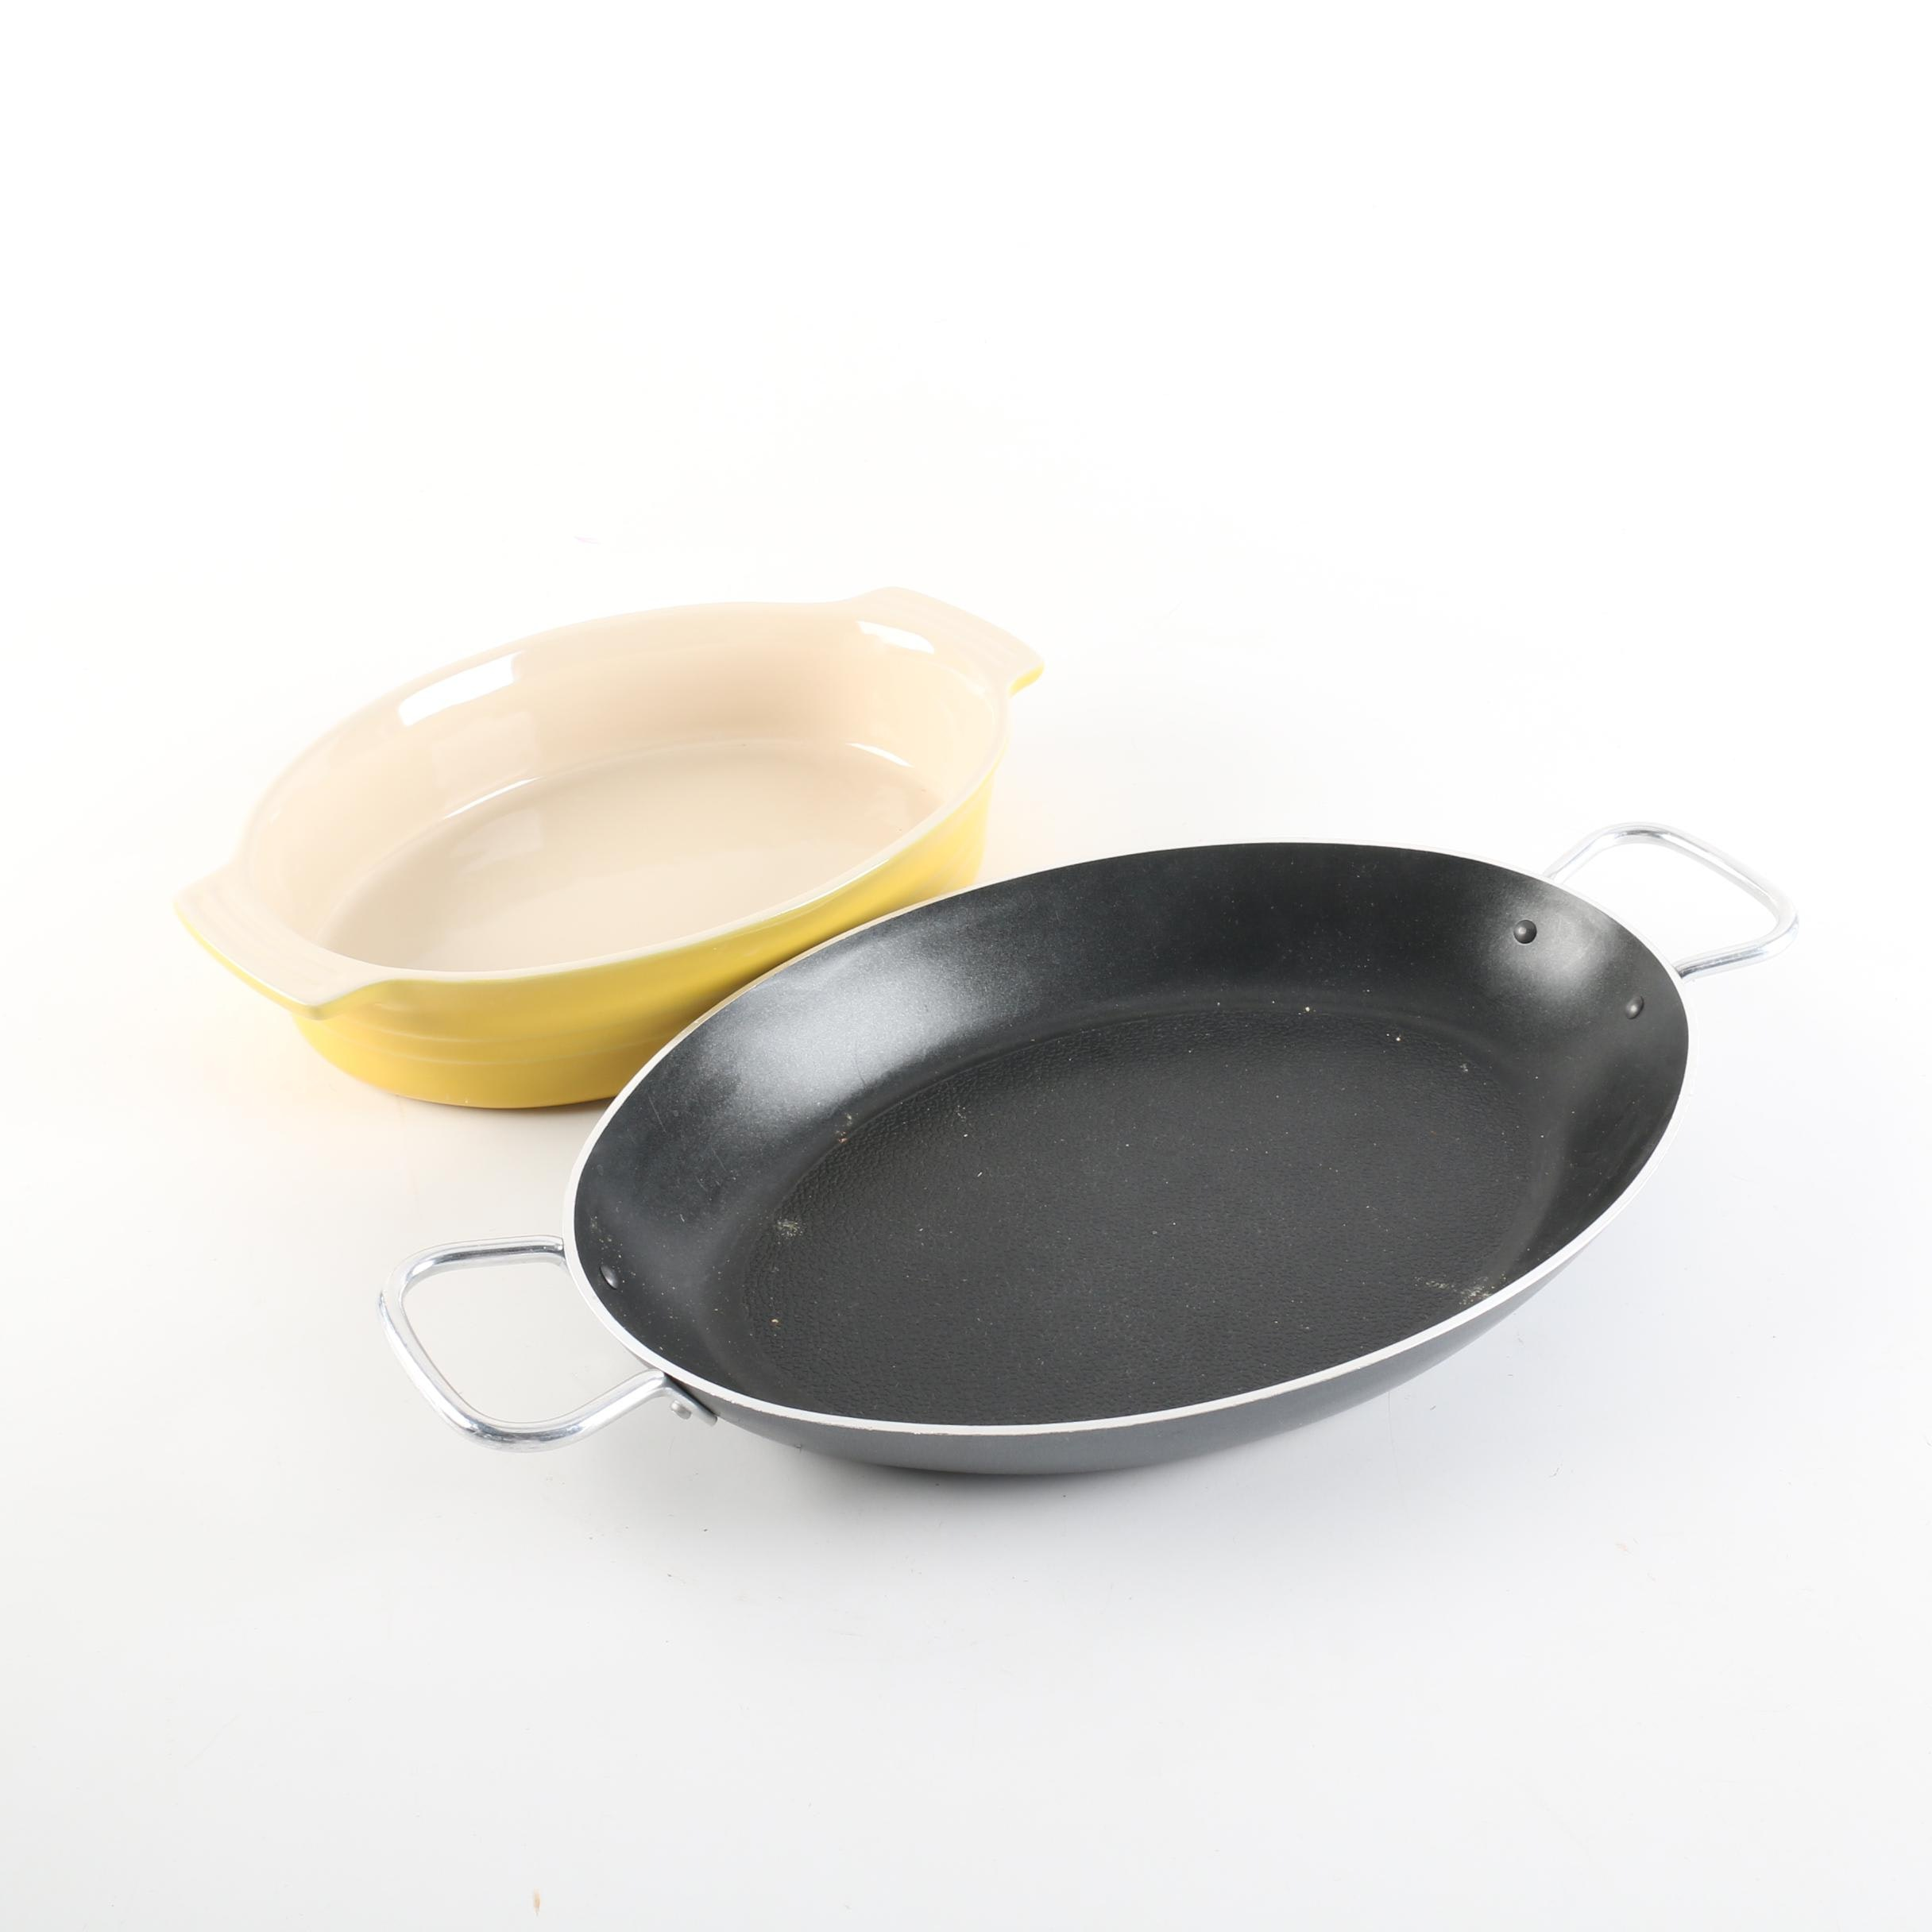 Le Creuset Yellow Baker and T-Fal Oval Pan